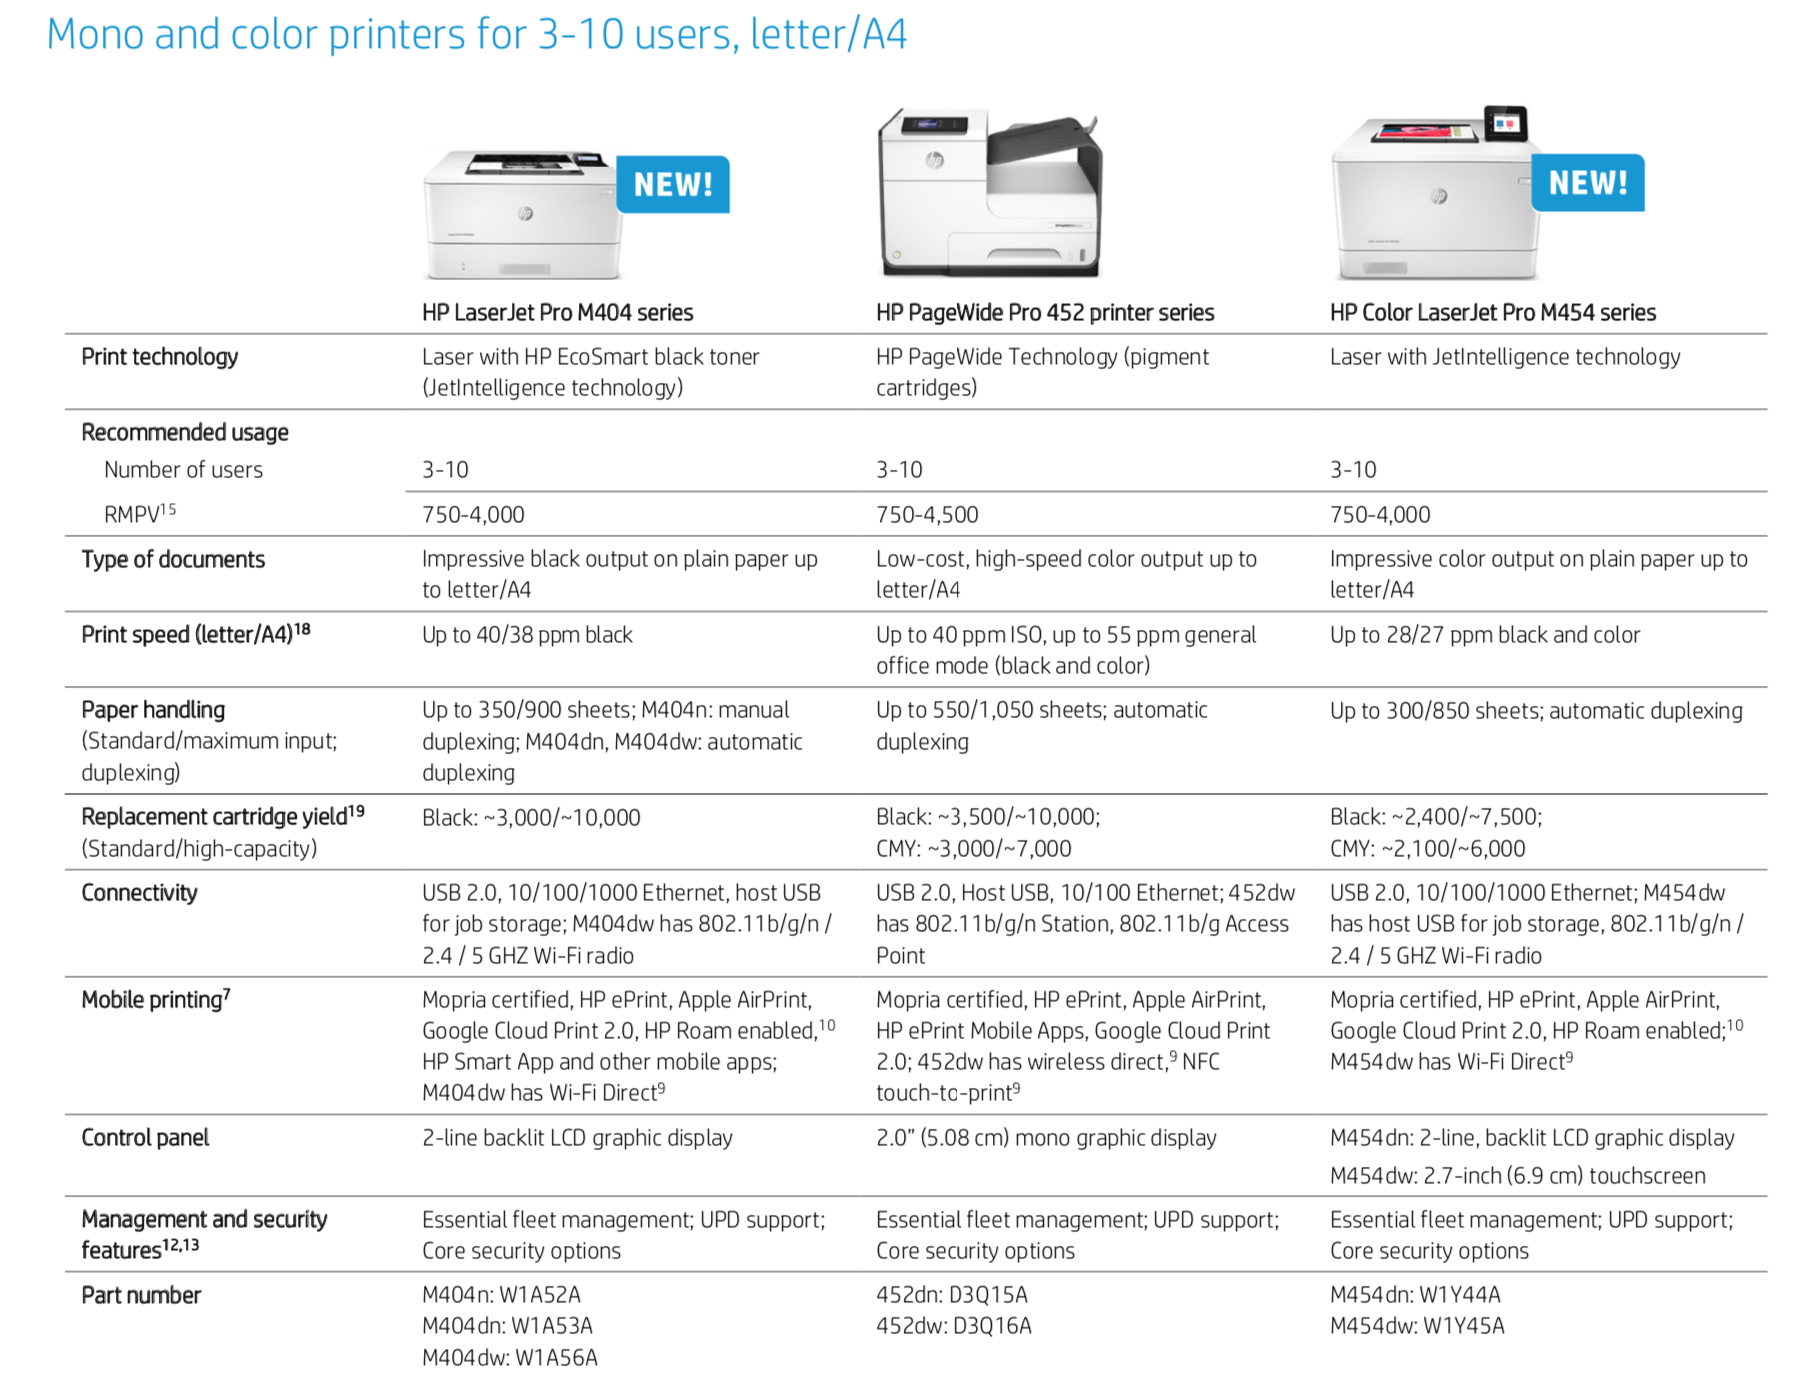 Mono and color printers for 3-10 users